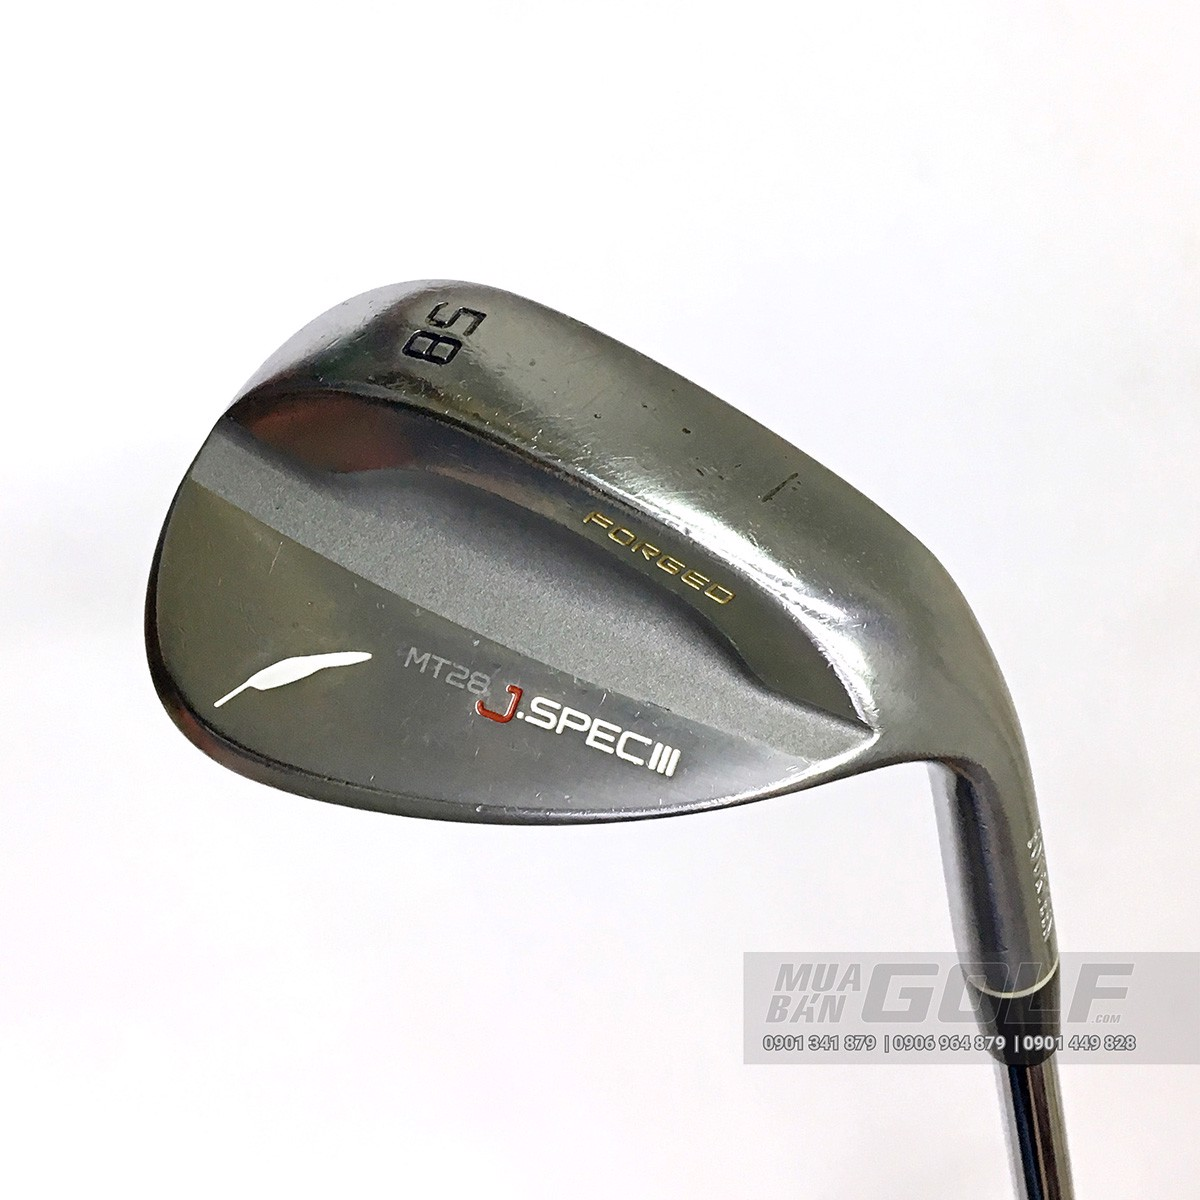 Gậy golf Wedge cũ FOURTEEN MT28 J SPEC LOFT 58 SCW FT6